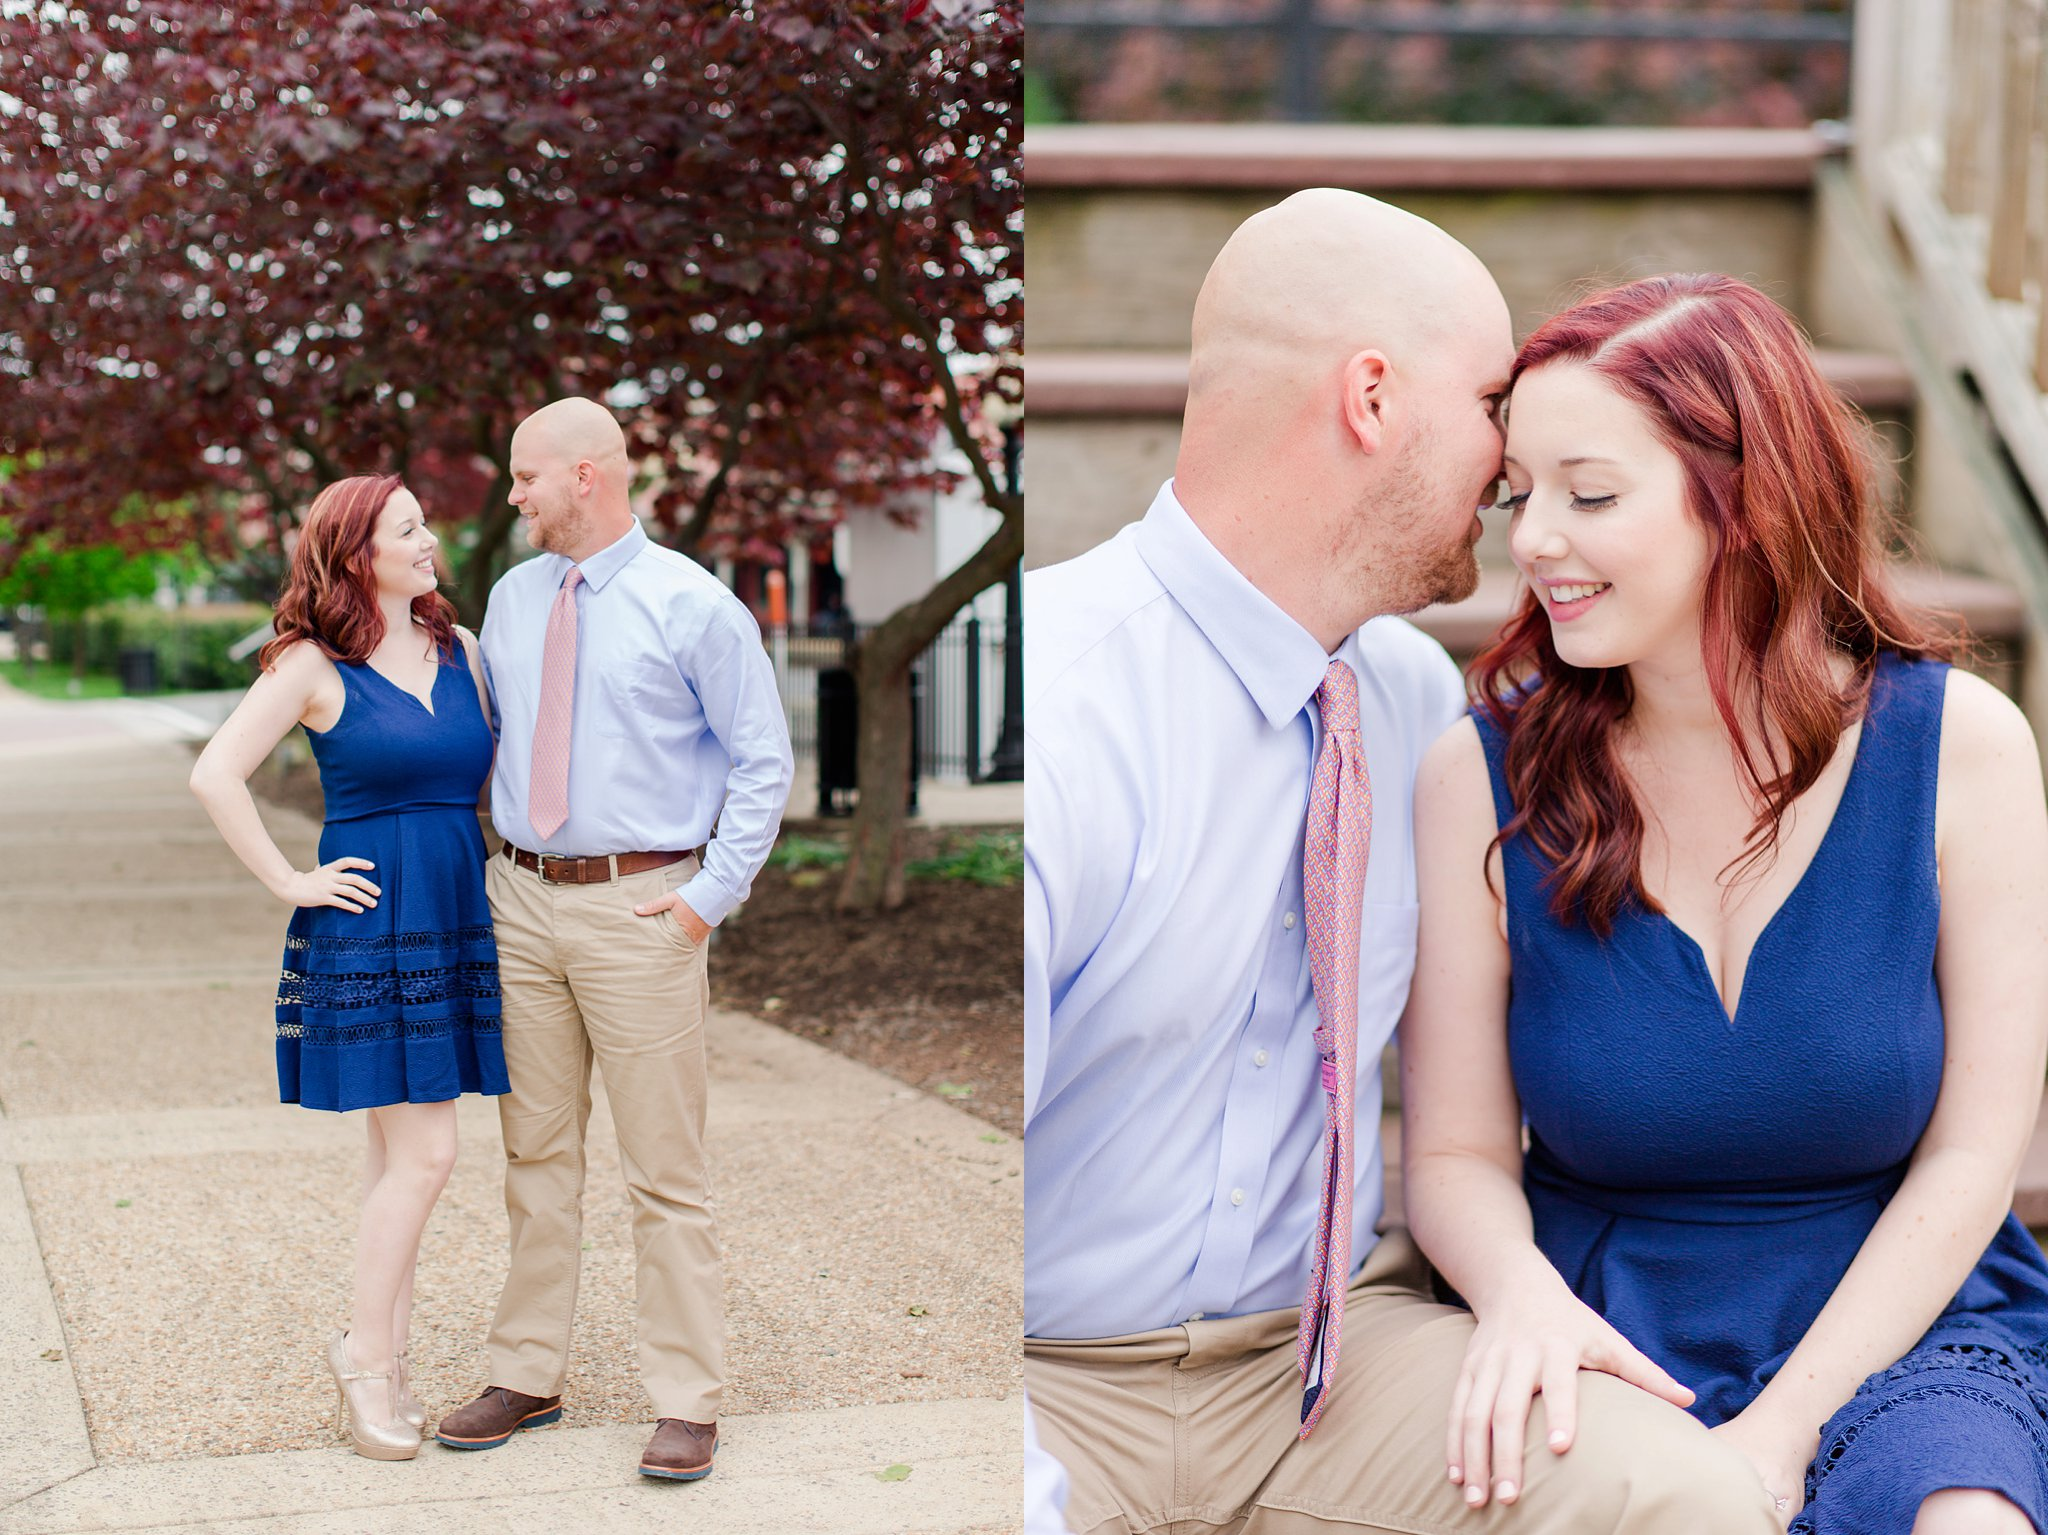 Old Town Manassas Battlefield Engagement Photos Virginia Wedding Photographer Jessica & Jason-2.jpg